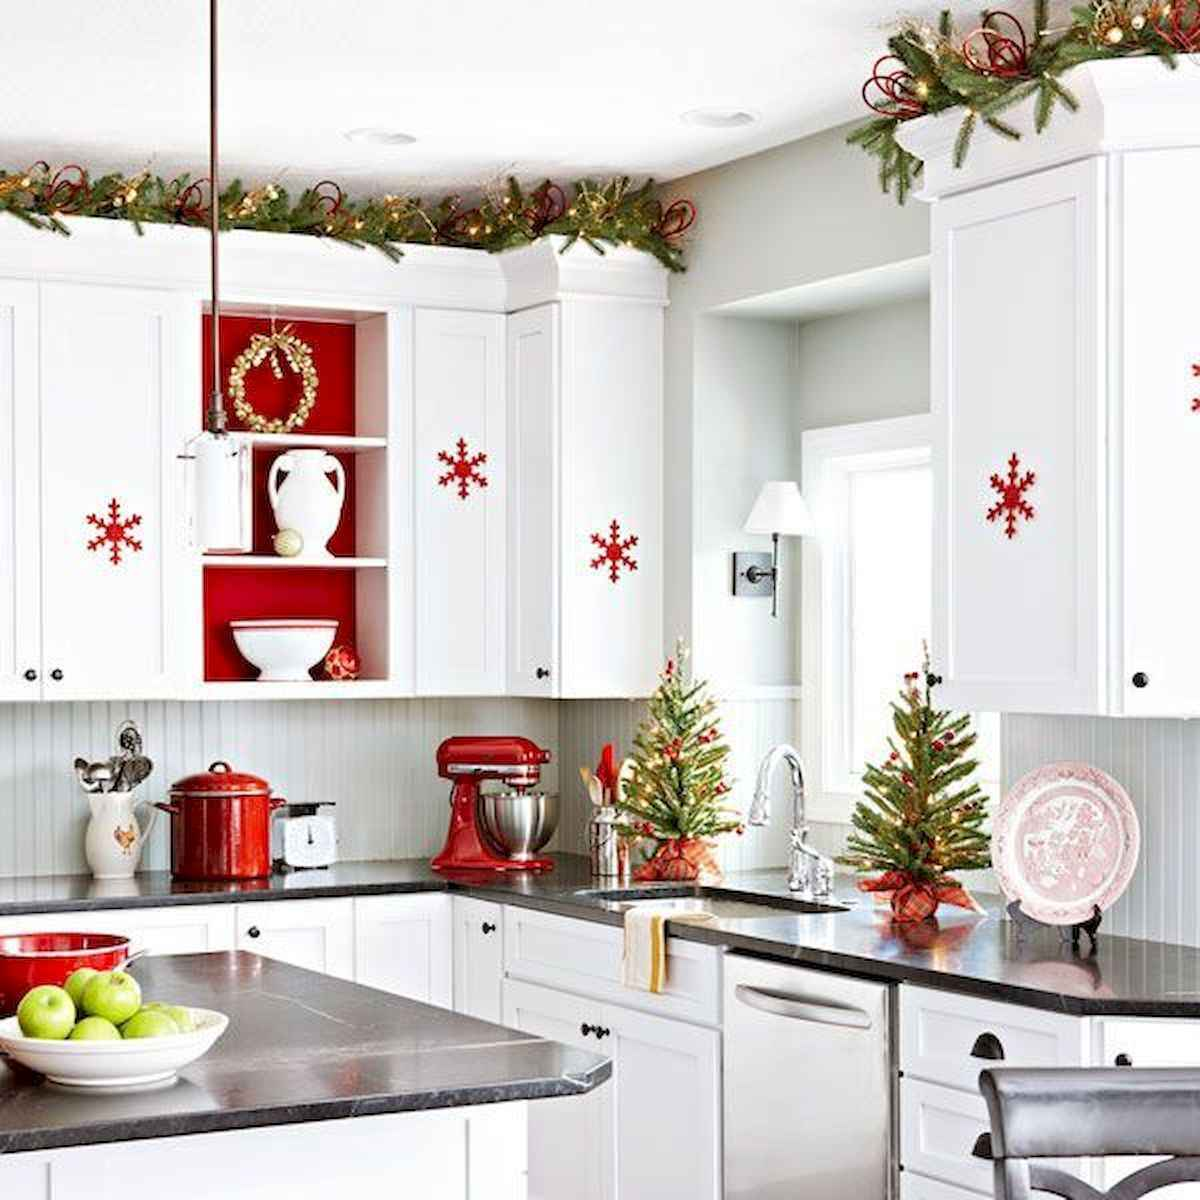 20 best christmas kitchen decor ideas and remodel (11)